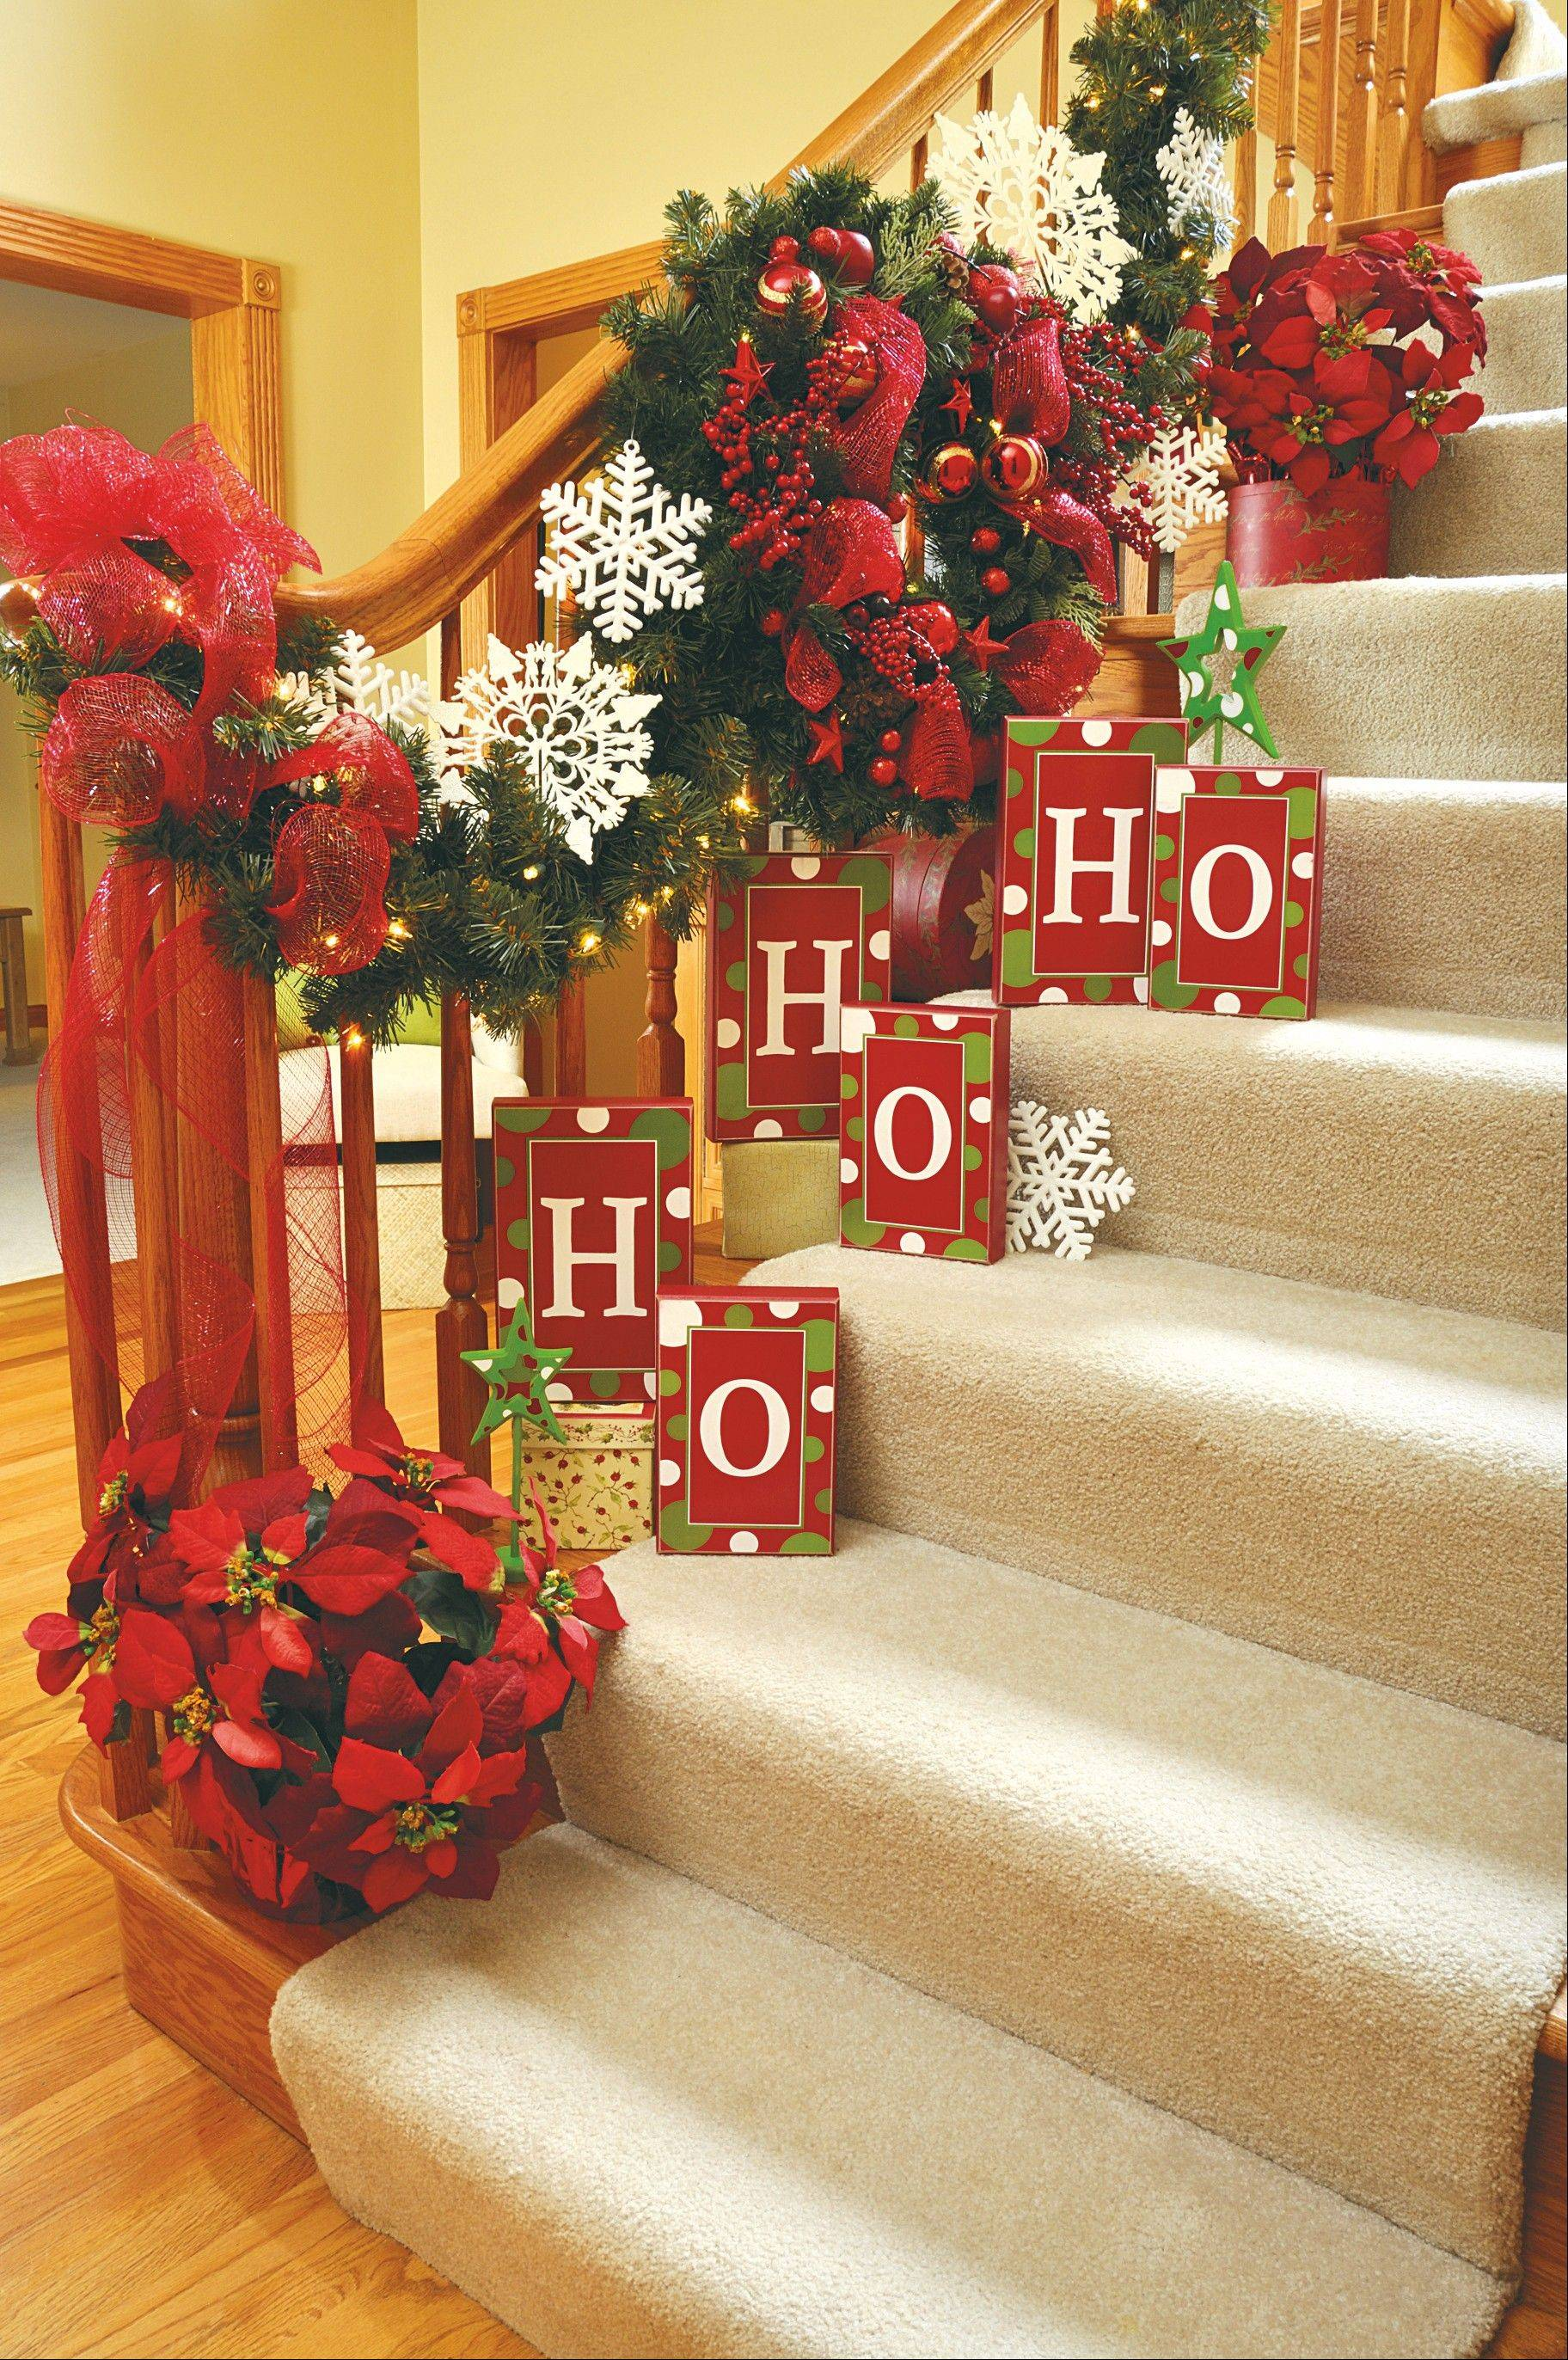 Alphabet bricks arranged on a staircase is a fanciful way of greeting holiday guests.